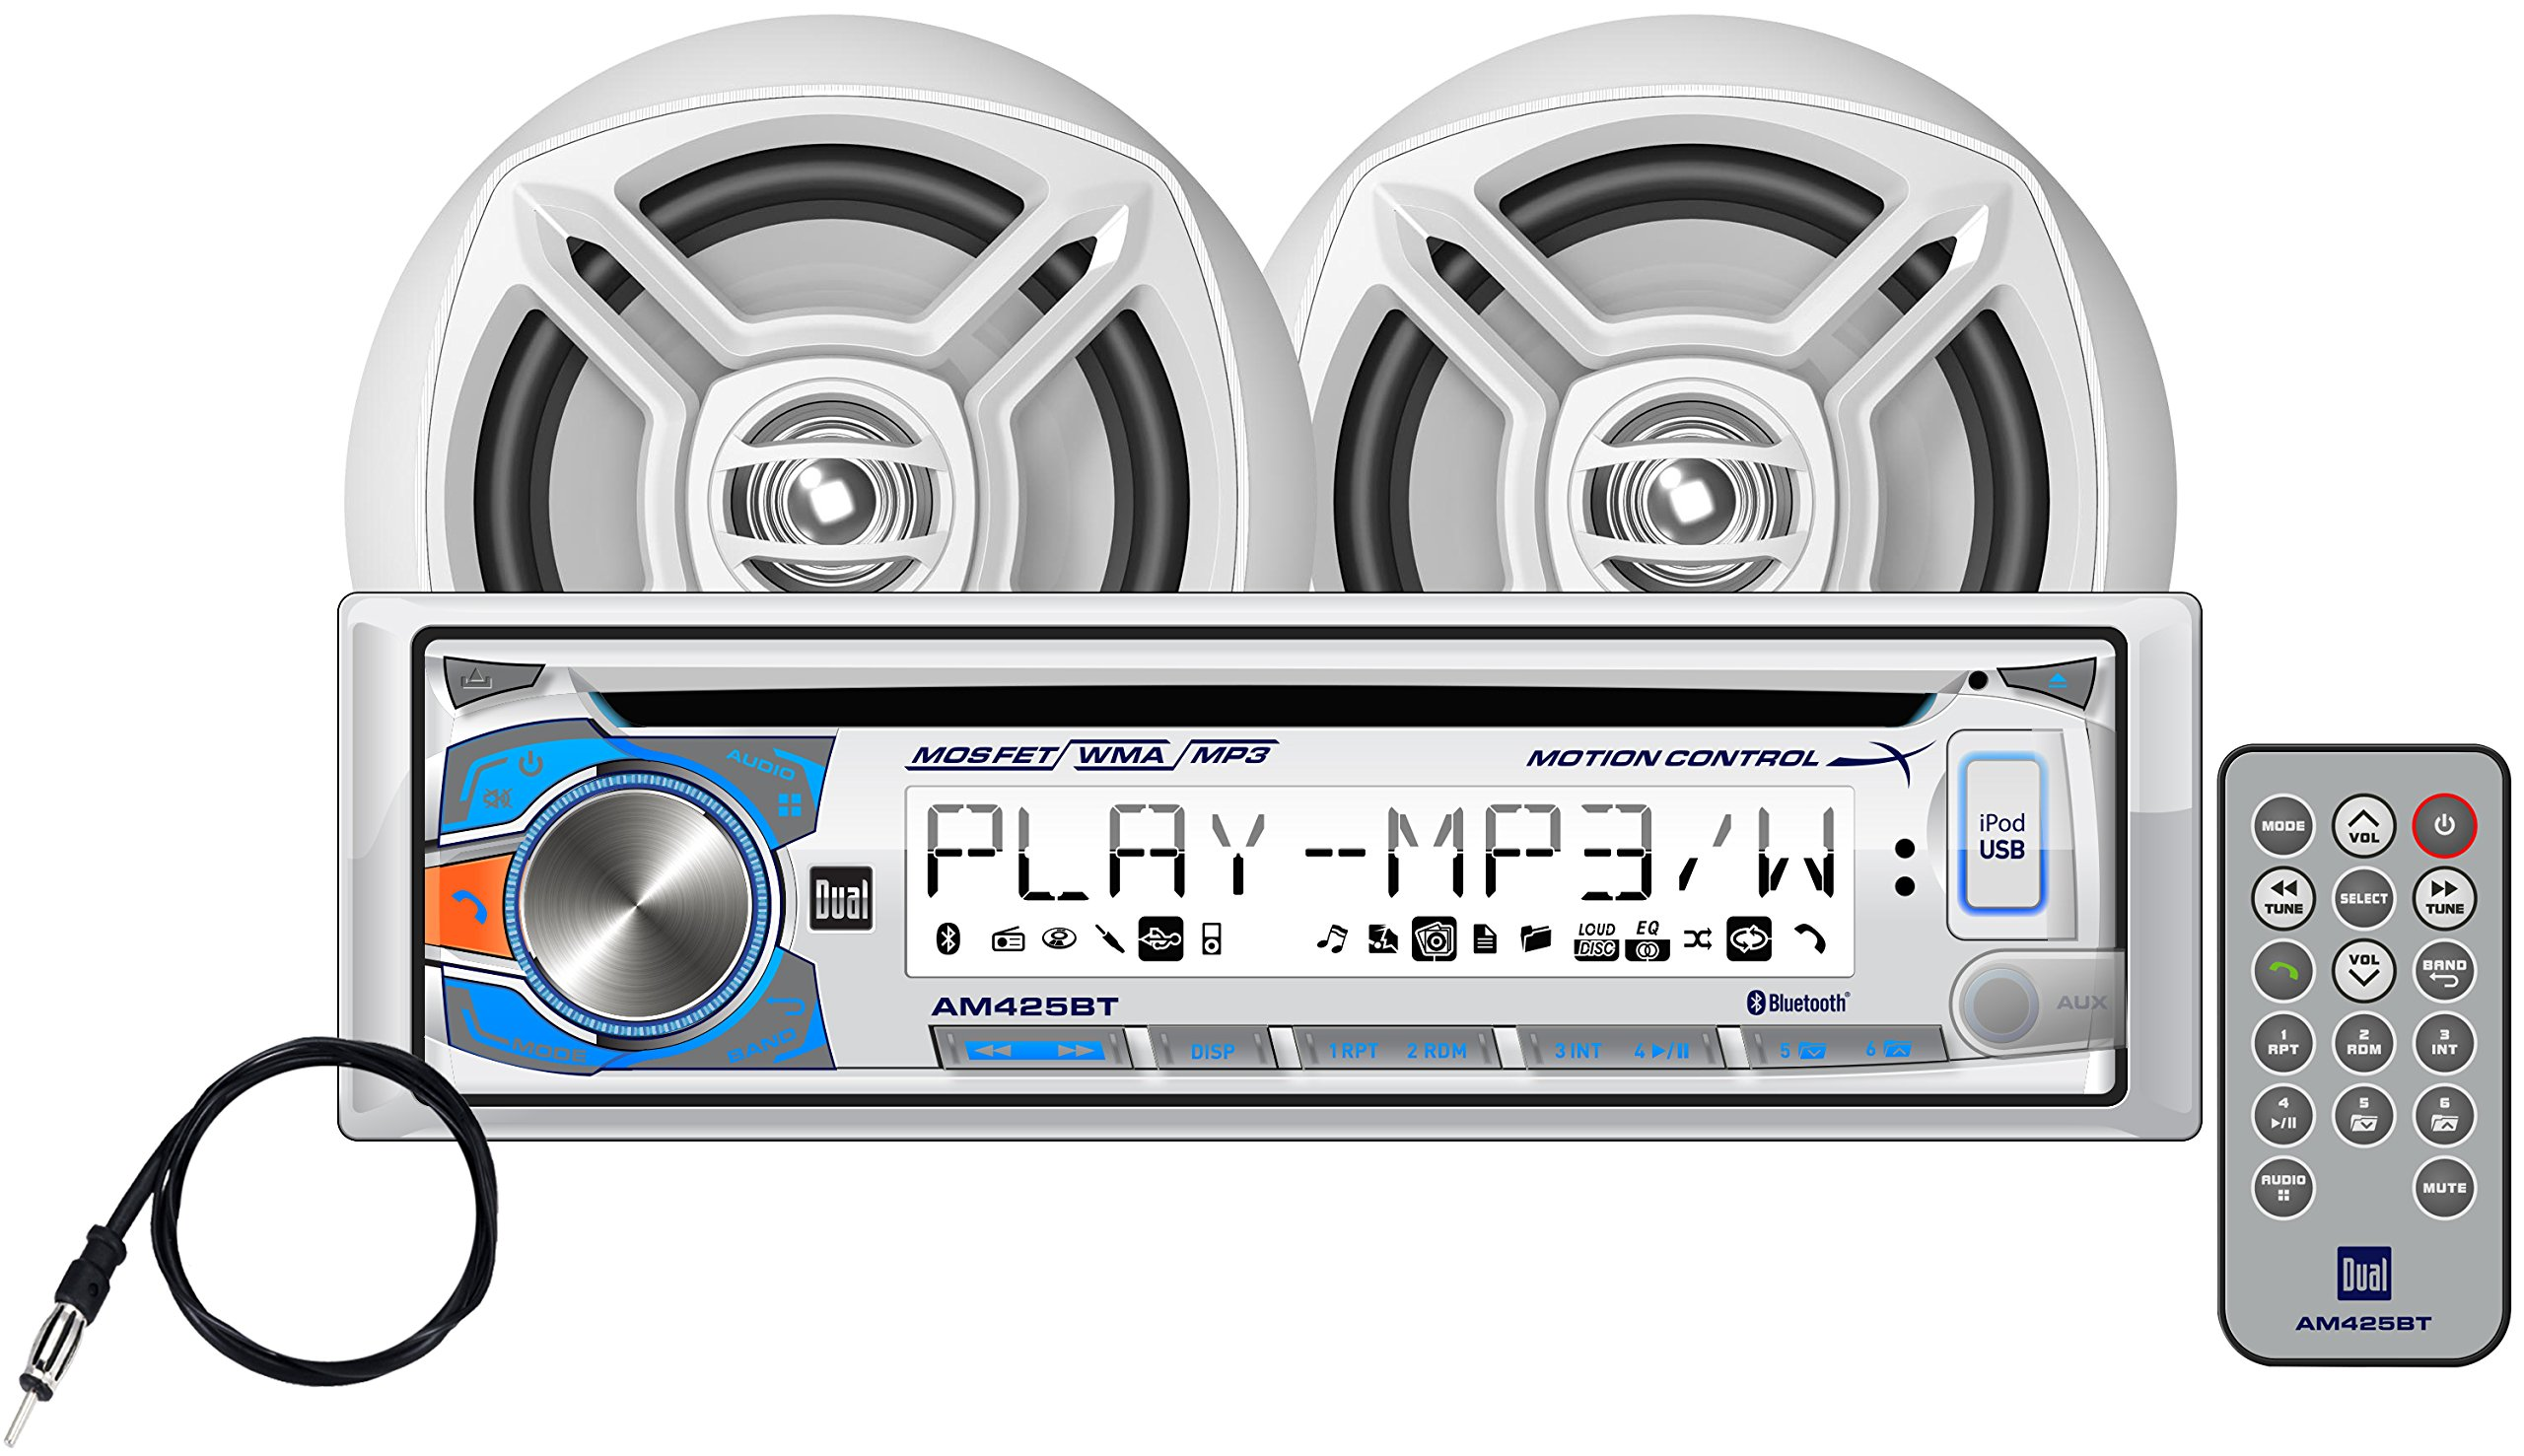 Dual Electronics AMCP425BT Multimedia 3.7 inch LCD Single DIN Marine Stereo with Built-In Bluetooth, Motion Control, CD & USB Players, Two 6.5 inch Dual Cone Marine Speakers & Marine Antenna